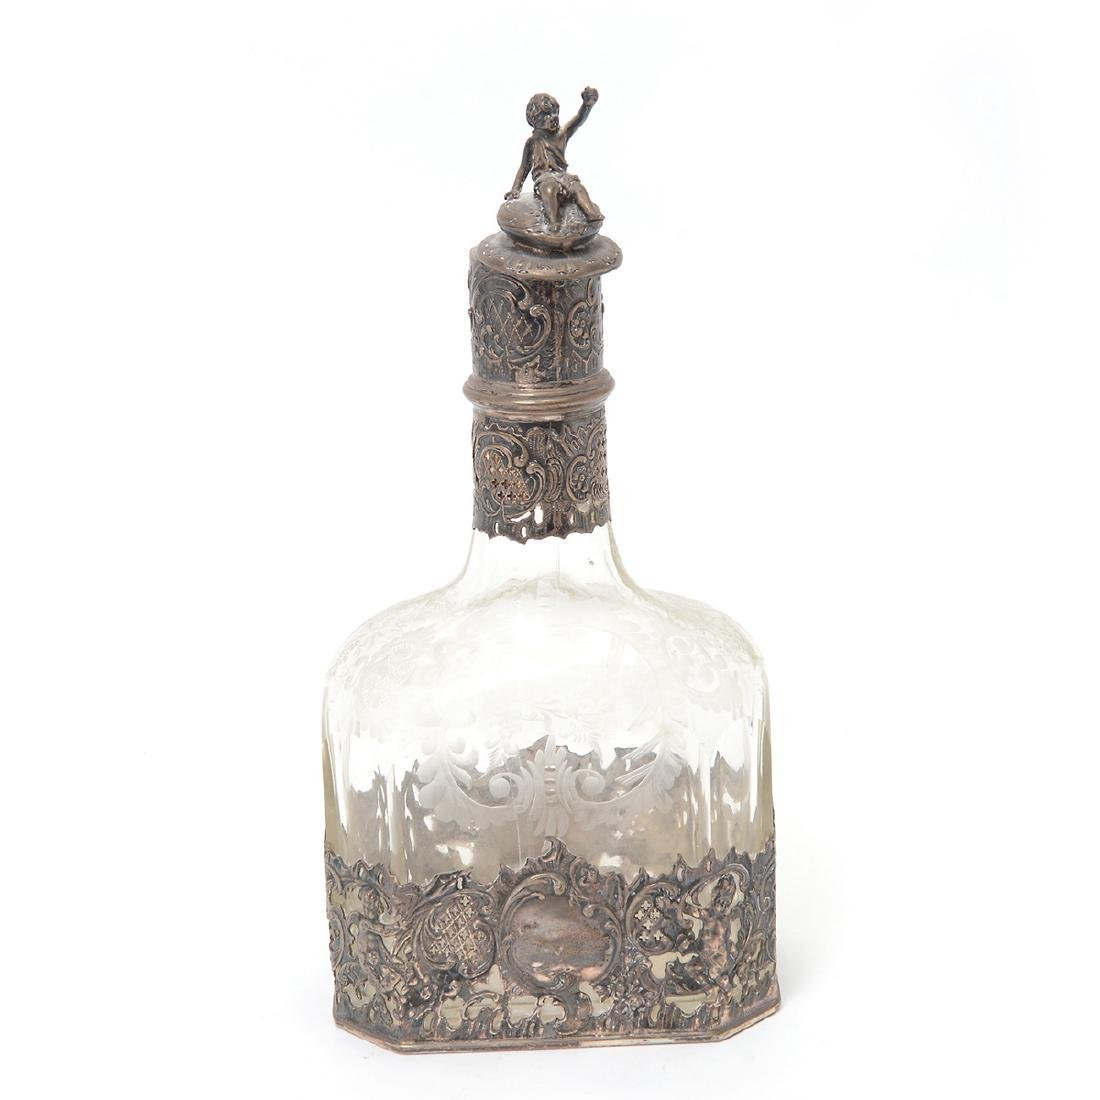 Etched Glass Decanter with 800 Standard Mounts